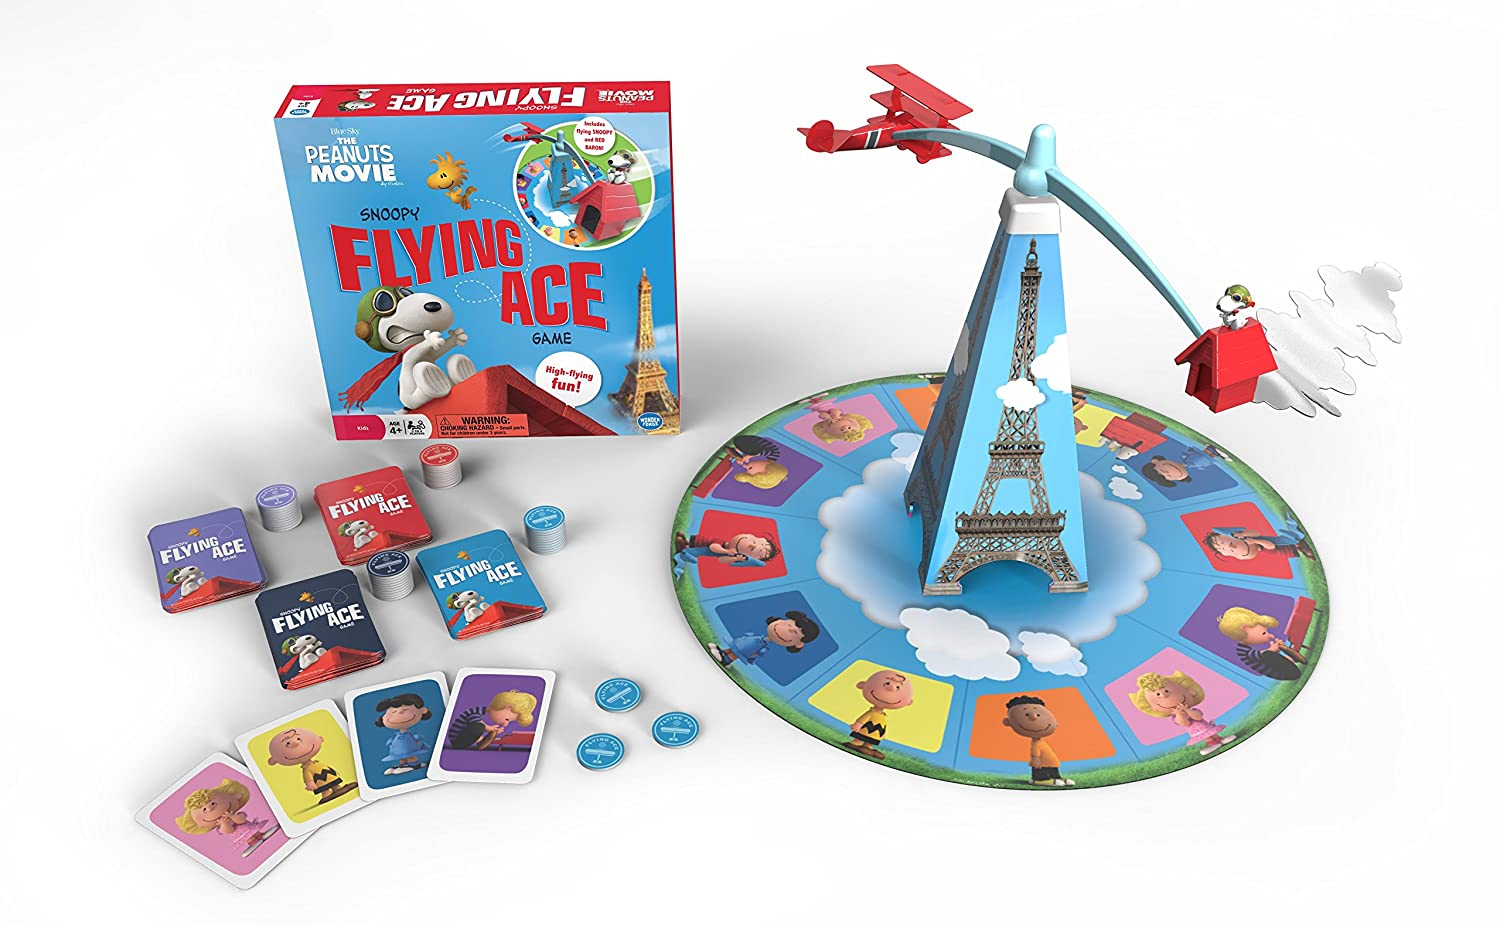 The Wonder Forge Peanuts Movie Flying Ace Game Board Game 1362